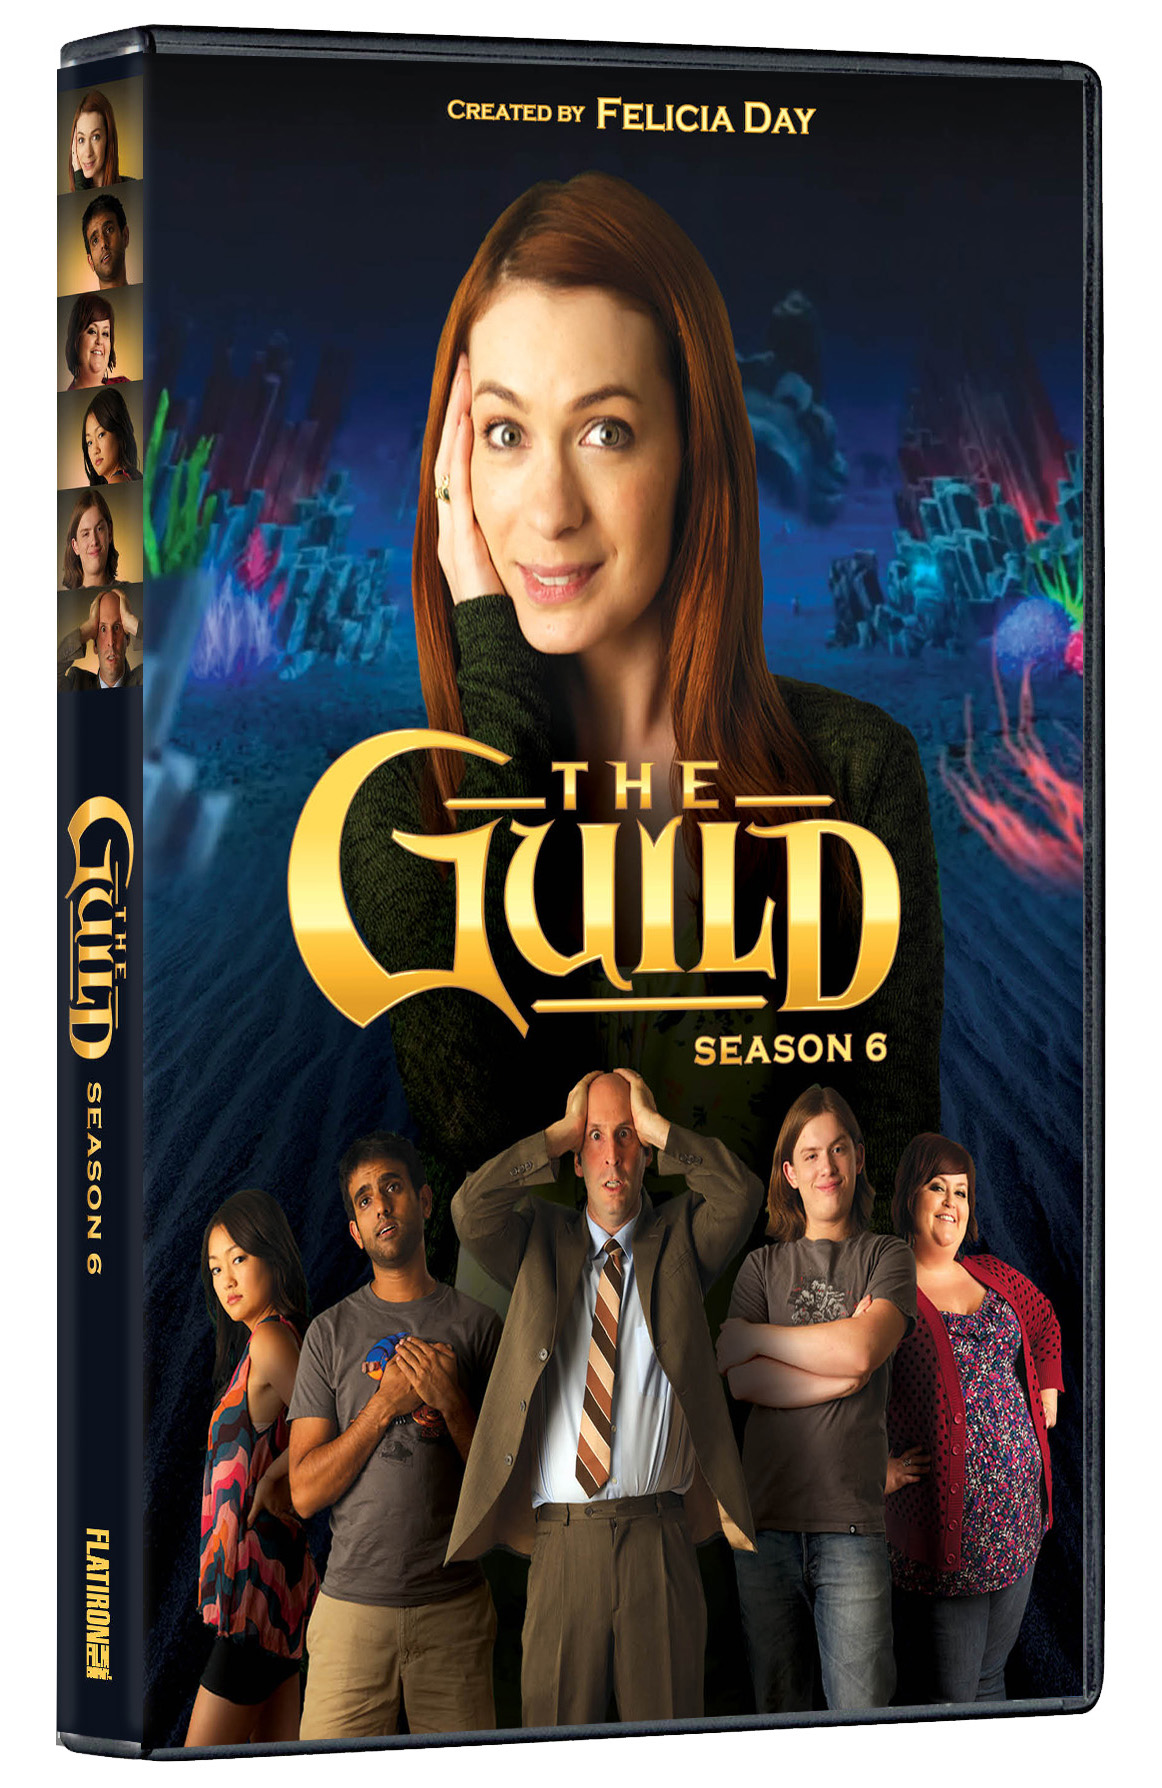 The Guild Season 6 DVD Review